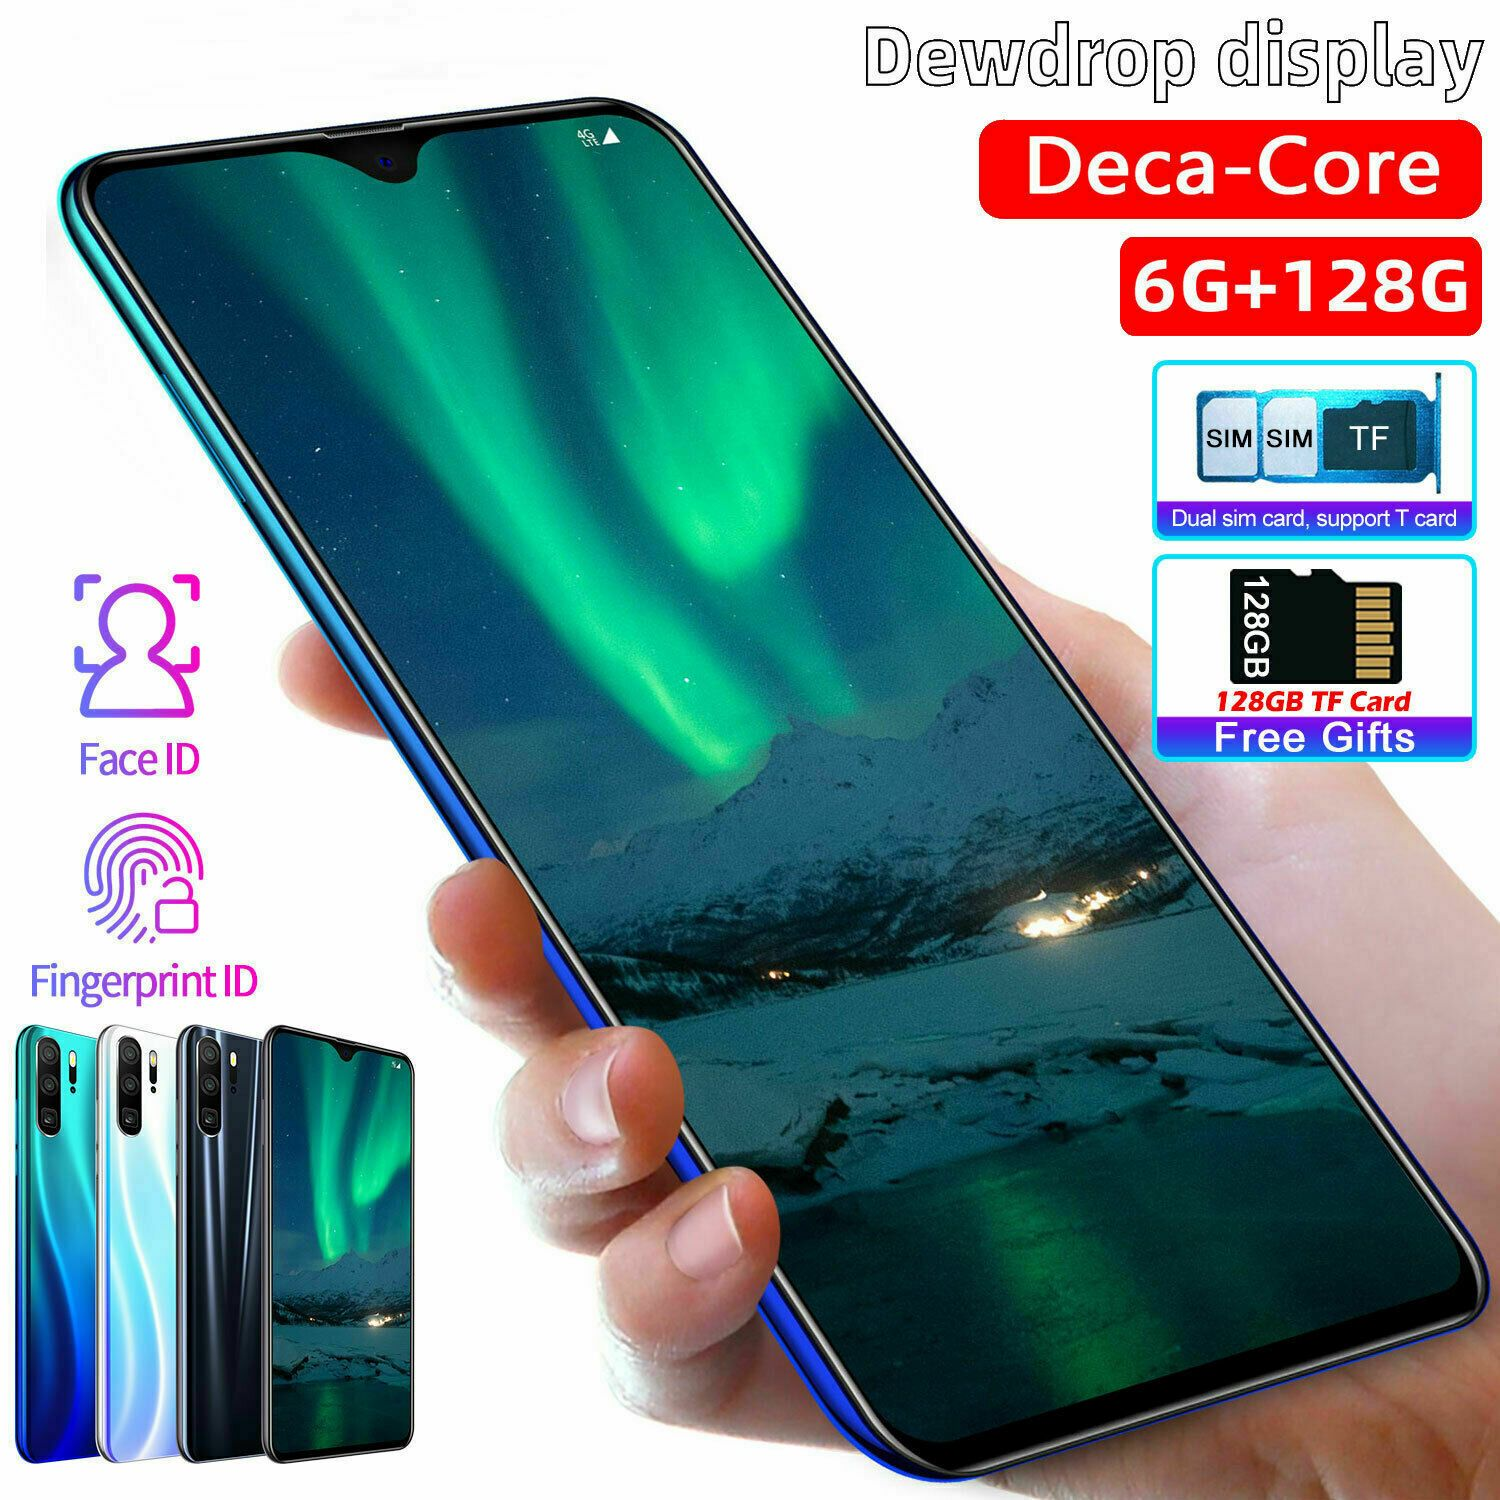 P30 Pro 6 3 Android 9 0 Phone 6gb 256gb Dual Sim Smartphone Free Tf Card 128g Smartphones For Sale Smartphone Products Glass Screen Protector Iphone